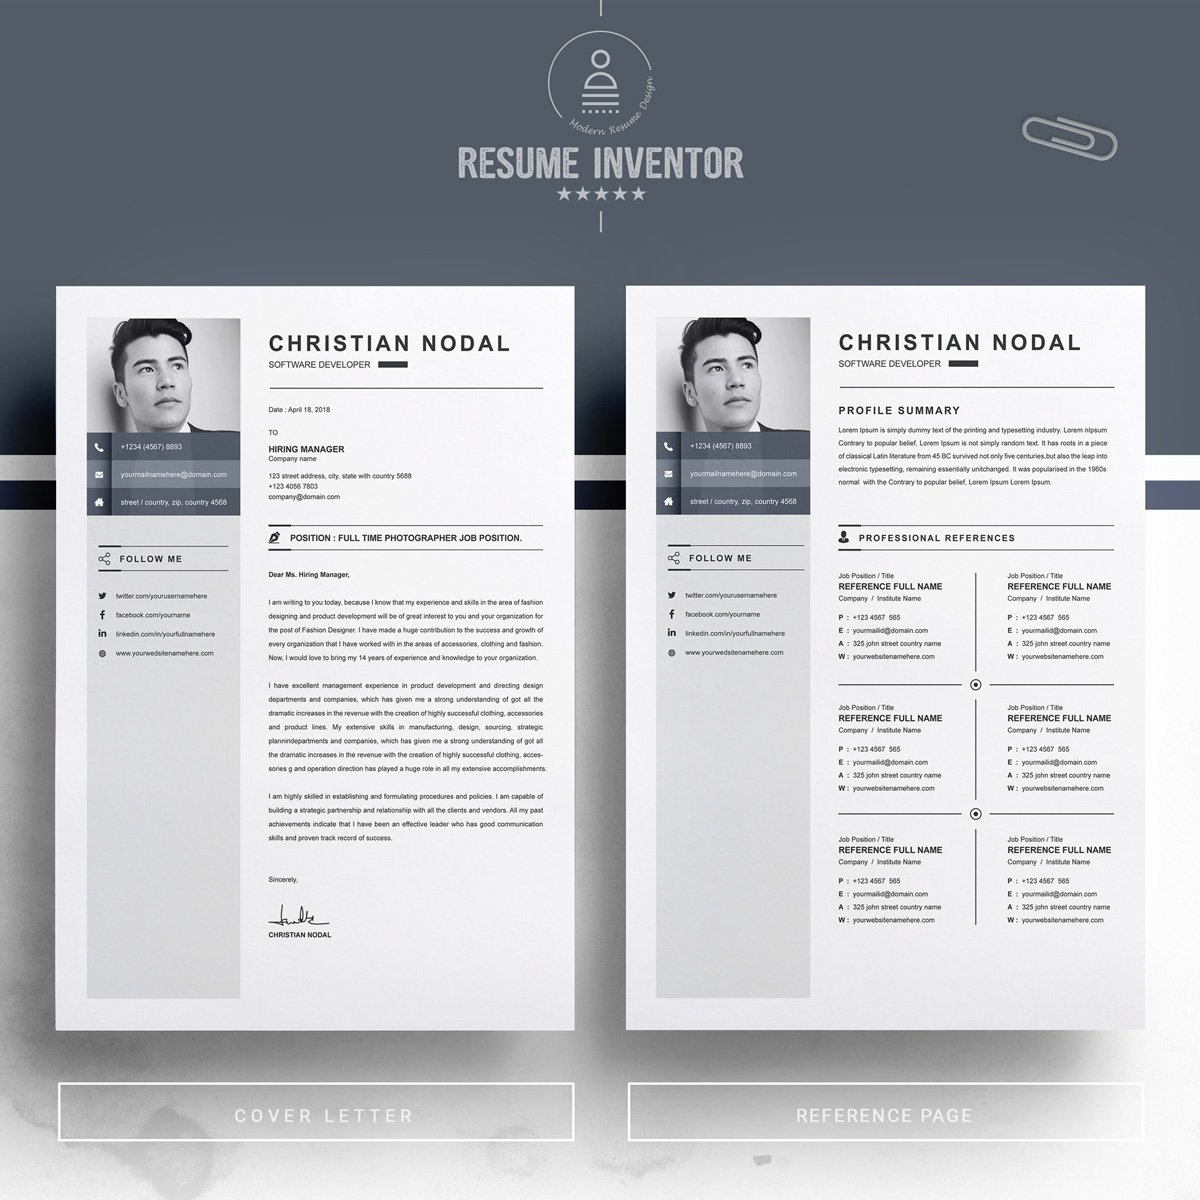 https://s3u.tmimgcdn.com/1860567-1553349815194_03_2-Pages-Free-Resume-Design-Template.jpg